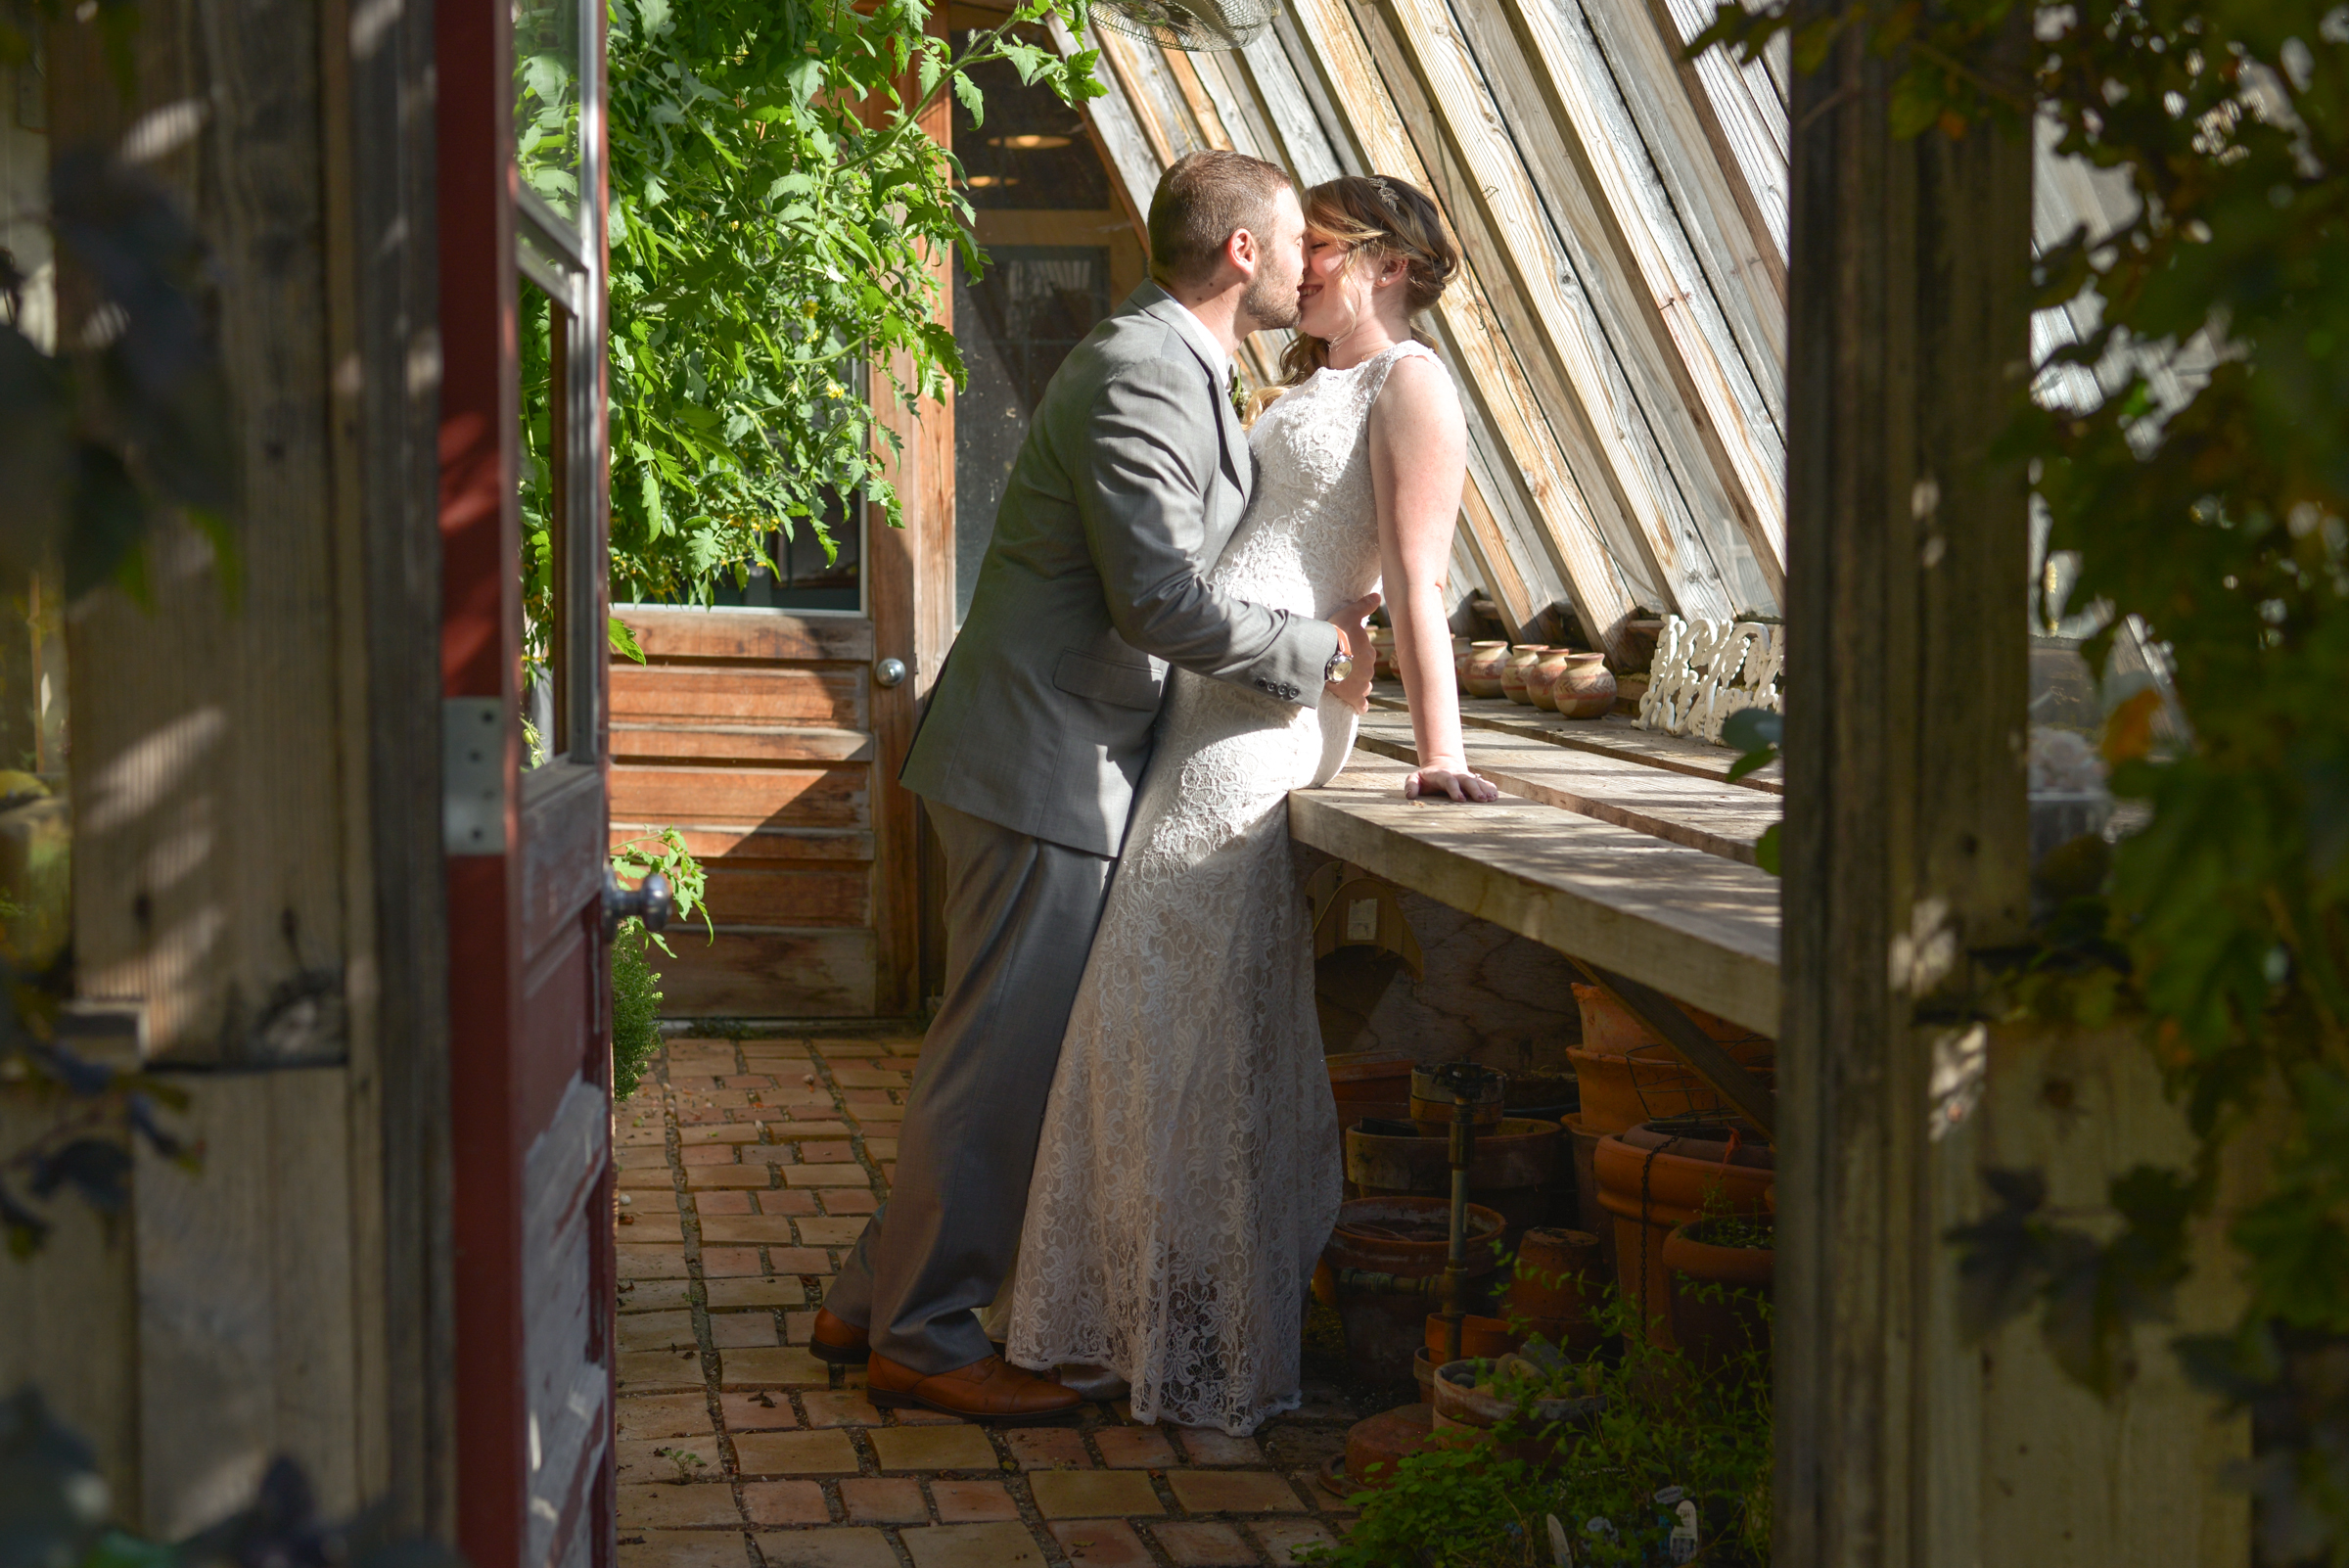 Wedding kissing in the sun room